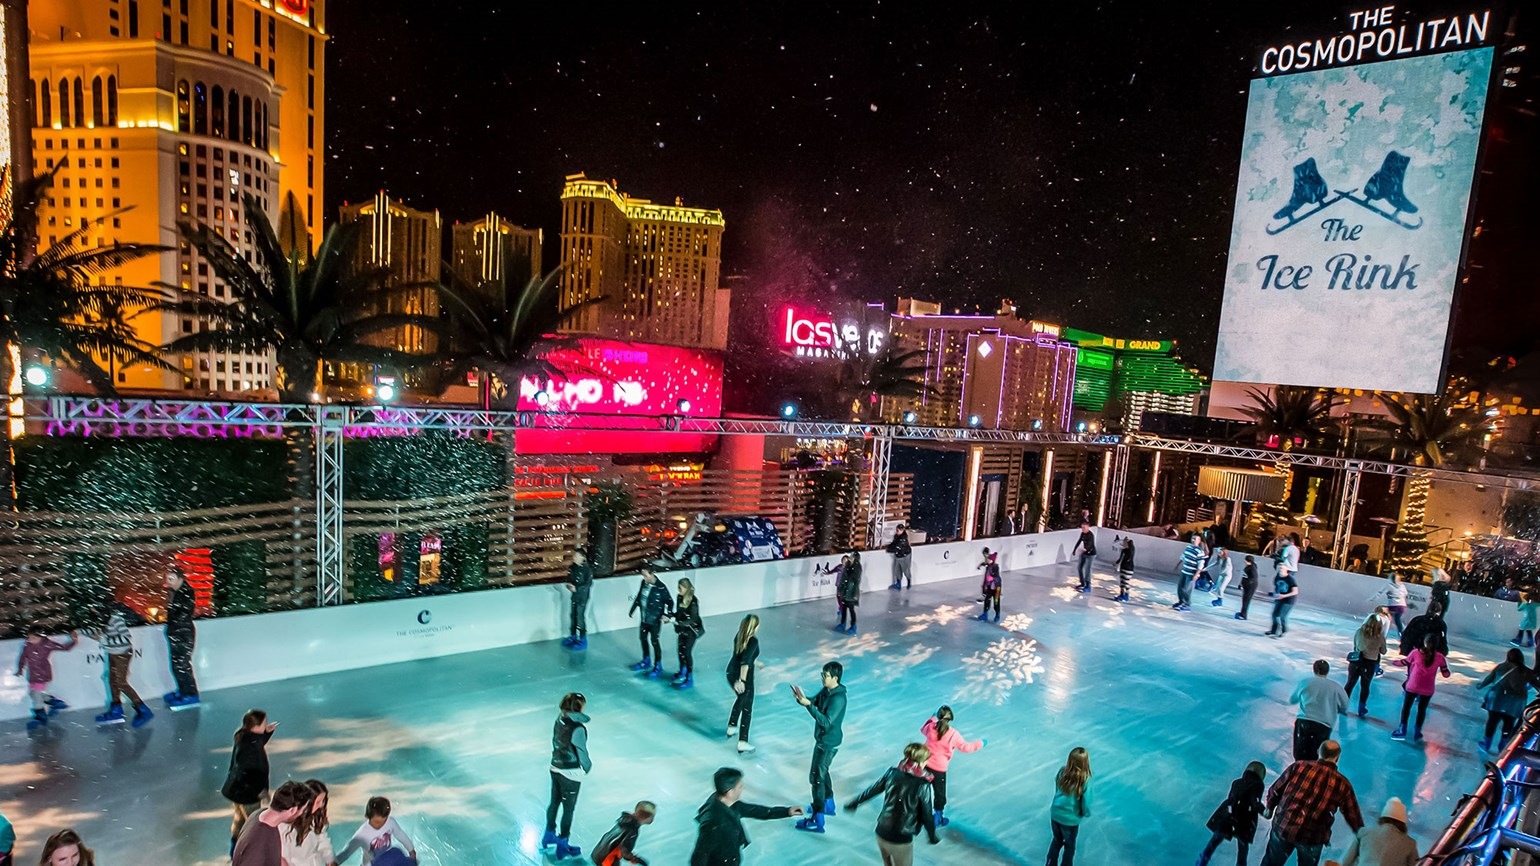 Ice rink returns to Cosmopolitan in Nov.